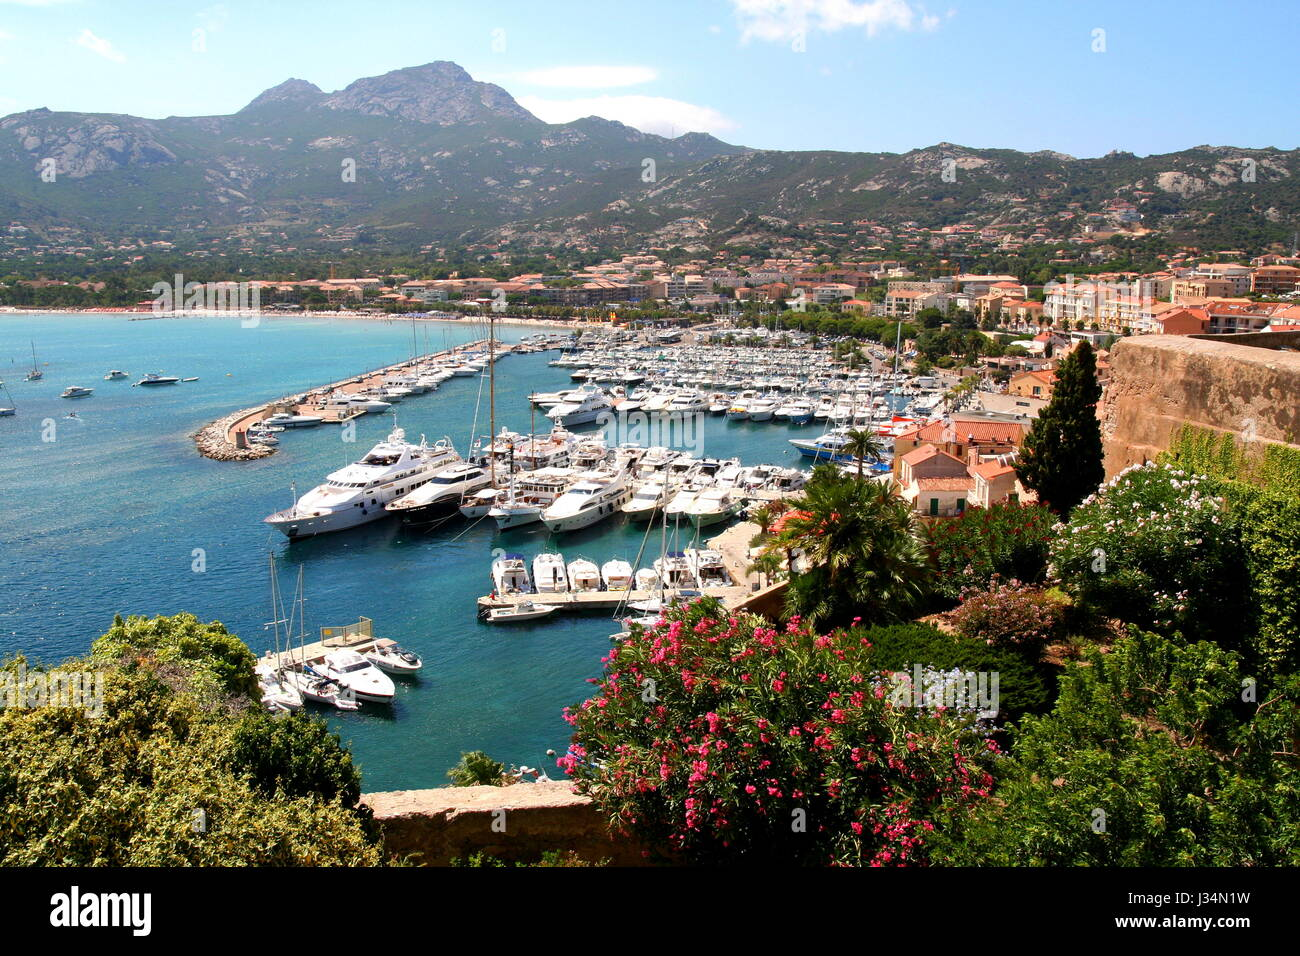 View of Calvi marina on Corsica, from the citadel. The rugged highlands of the islands interior are visible in the - Stock Image